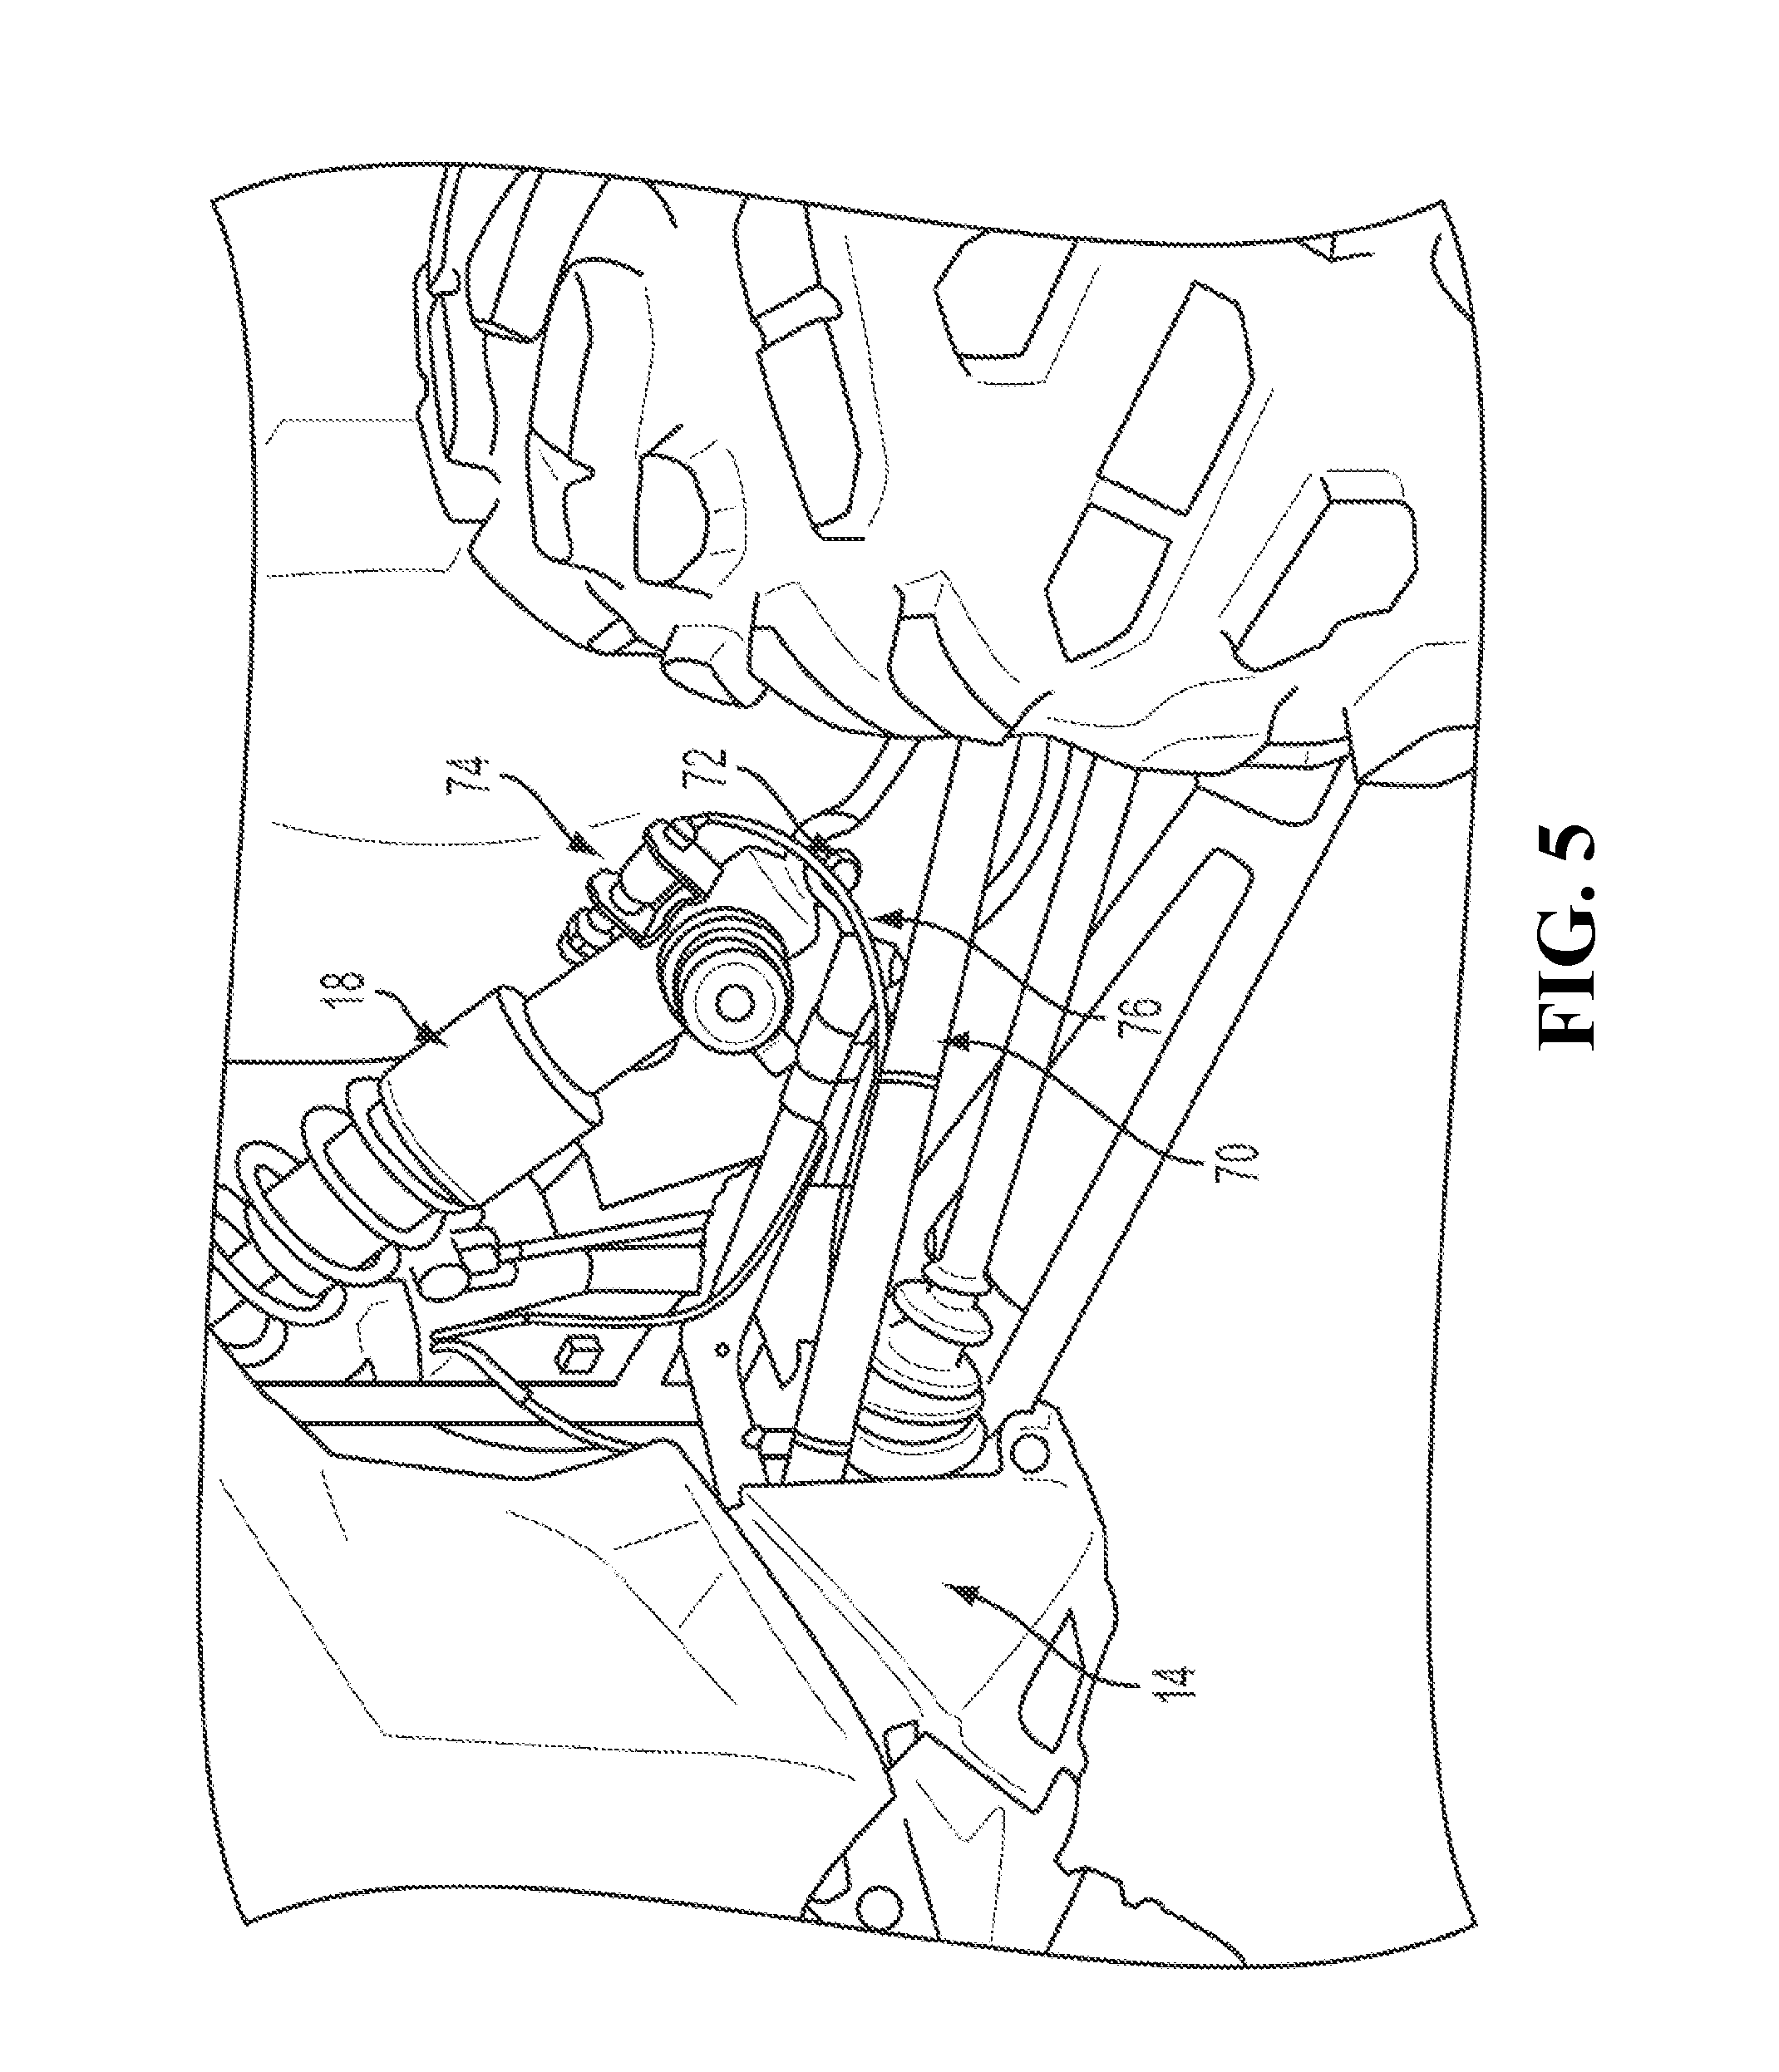 patent us20140125018 vehicle having suspension with continuous